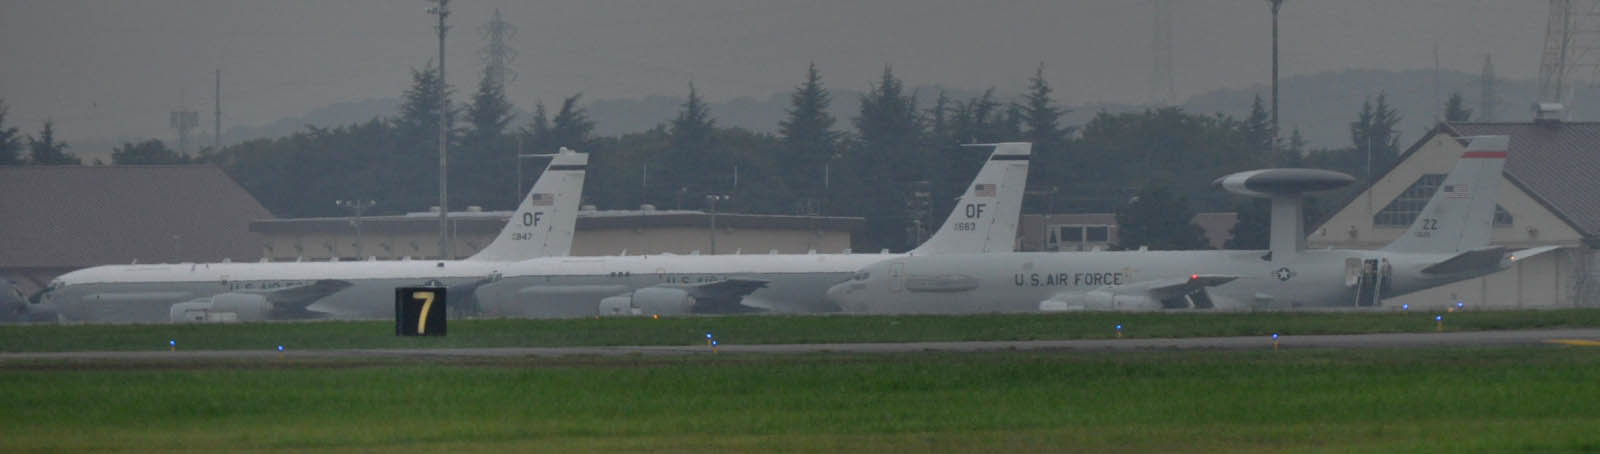 Rc135s110802g162